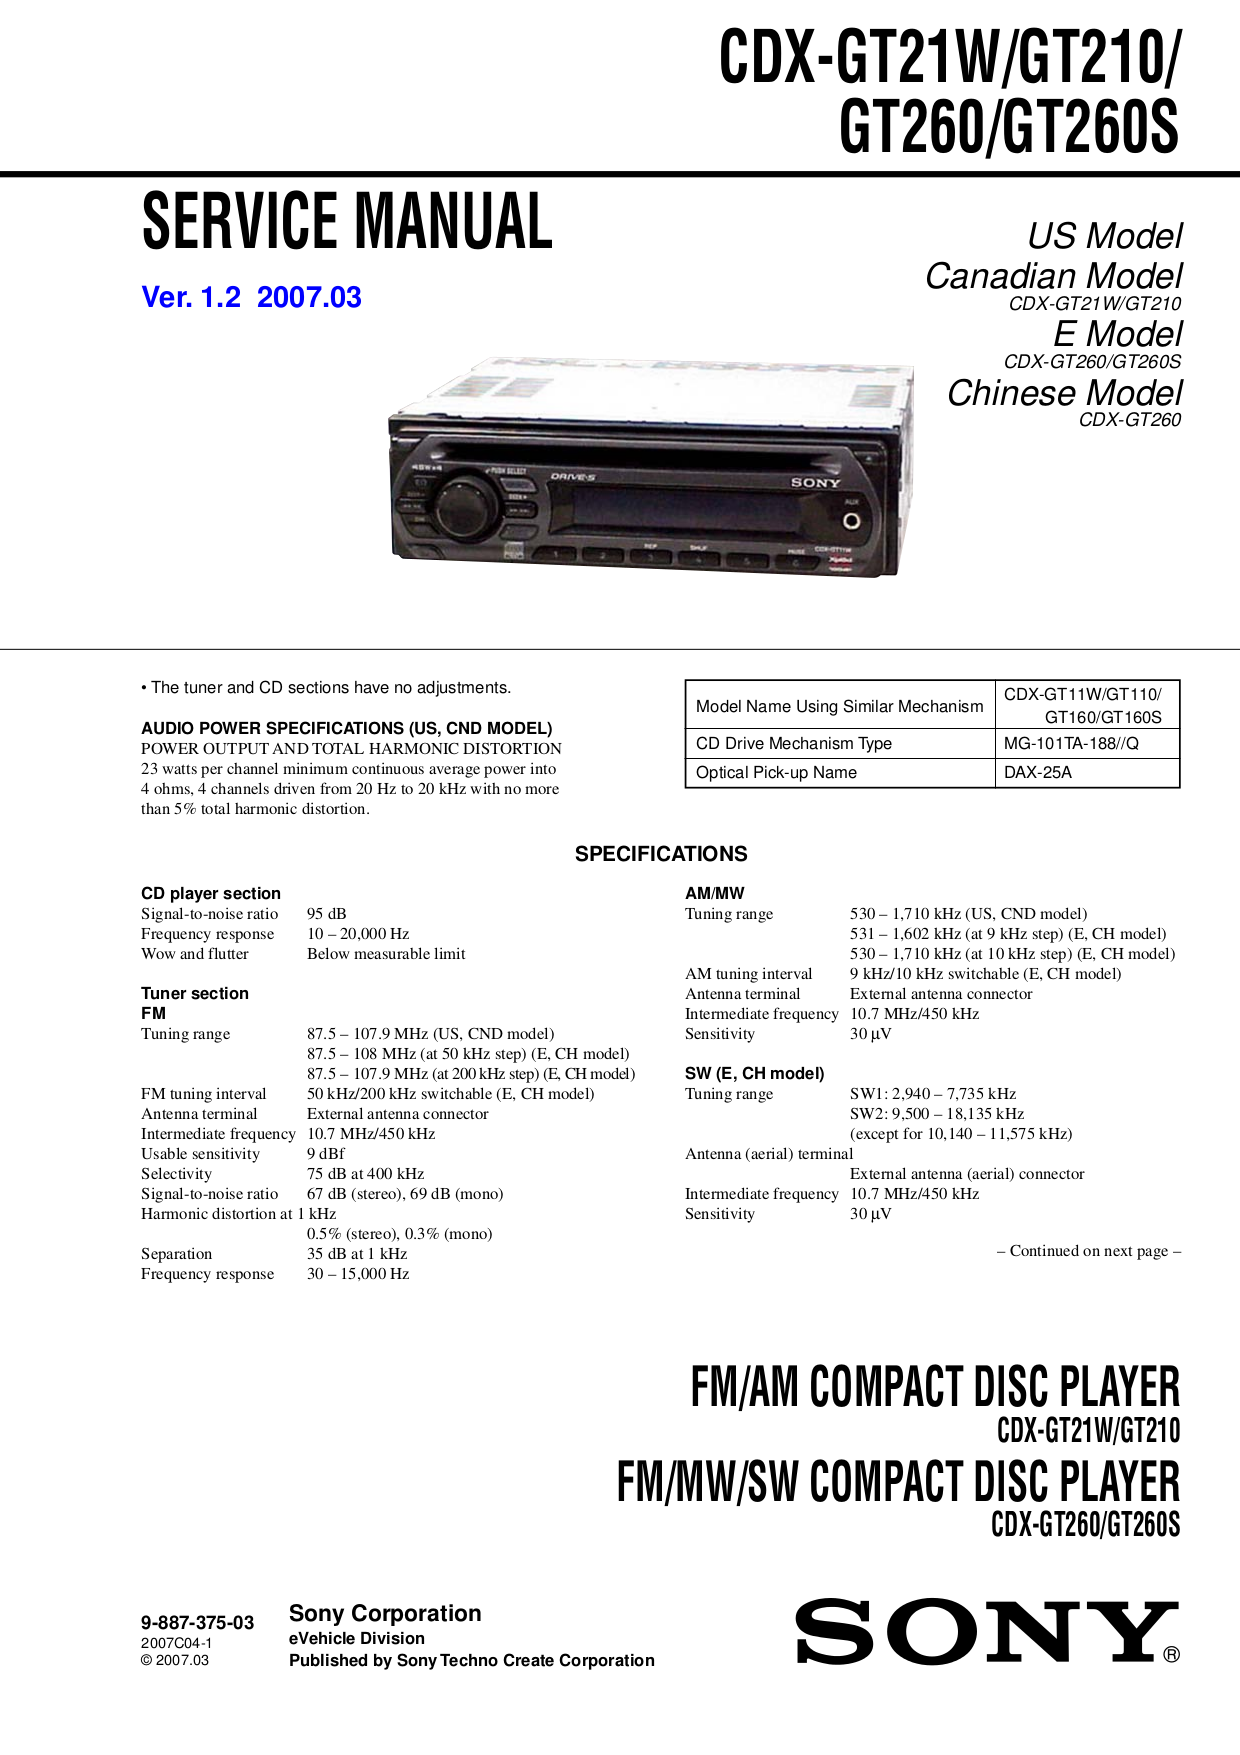 pdf for Sony Car Receiver CDX-GT210 manual